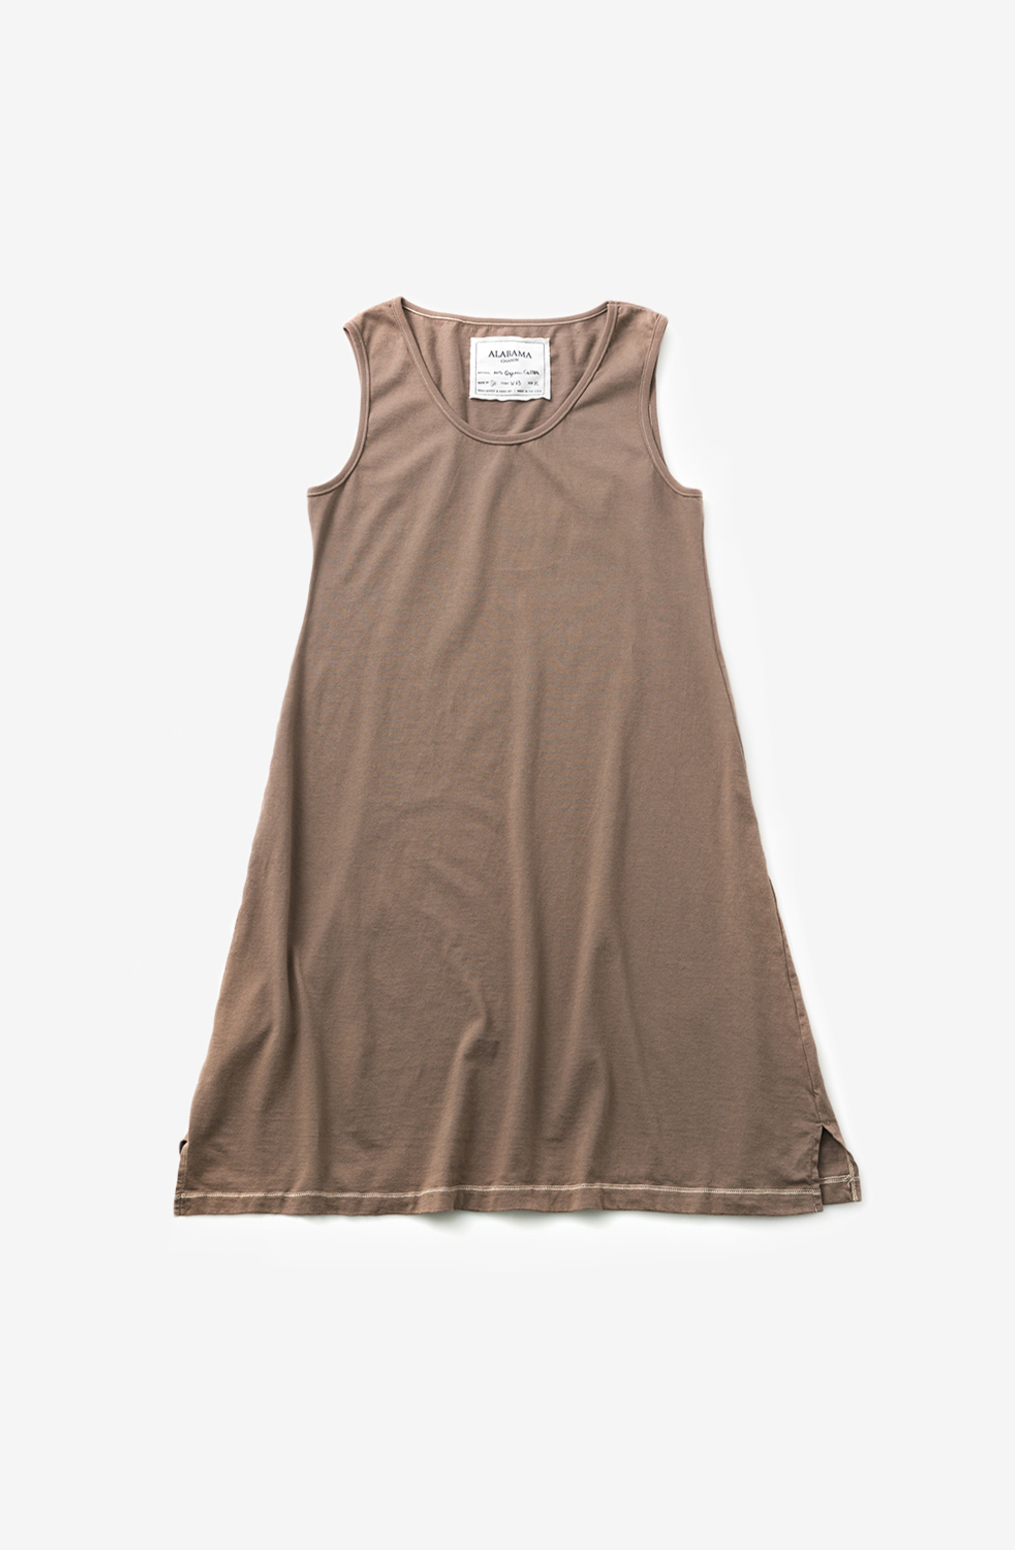 Alabama chanin organic cotton basic summer dress 2